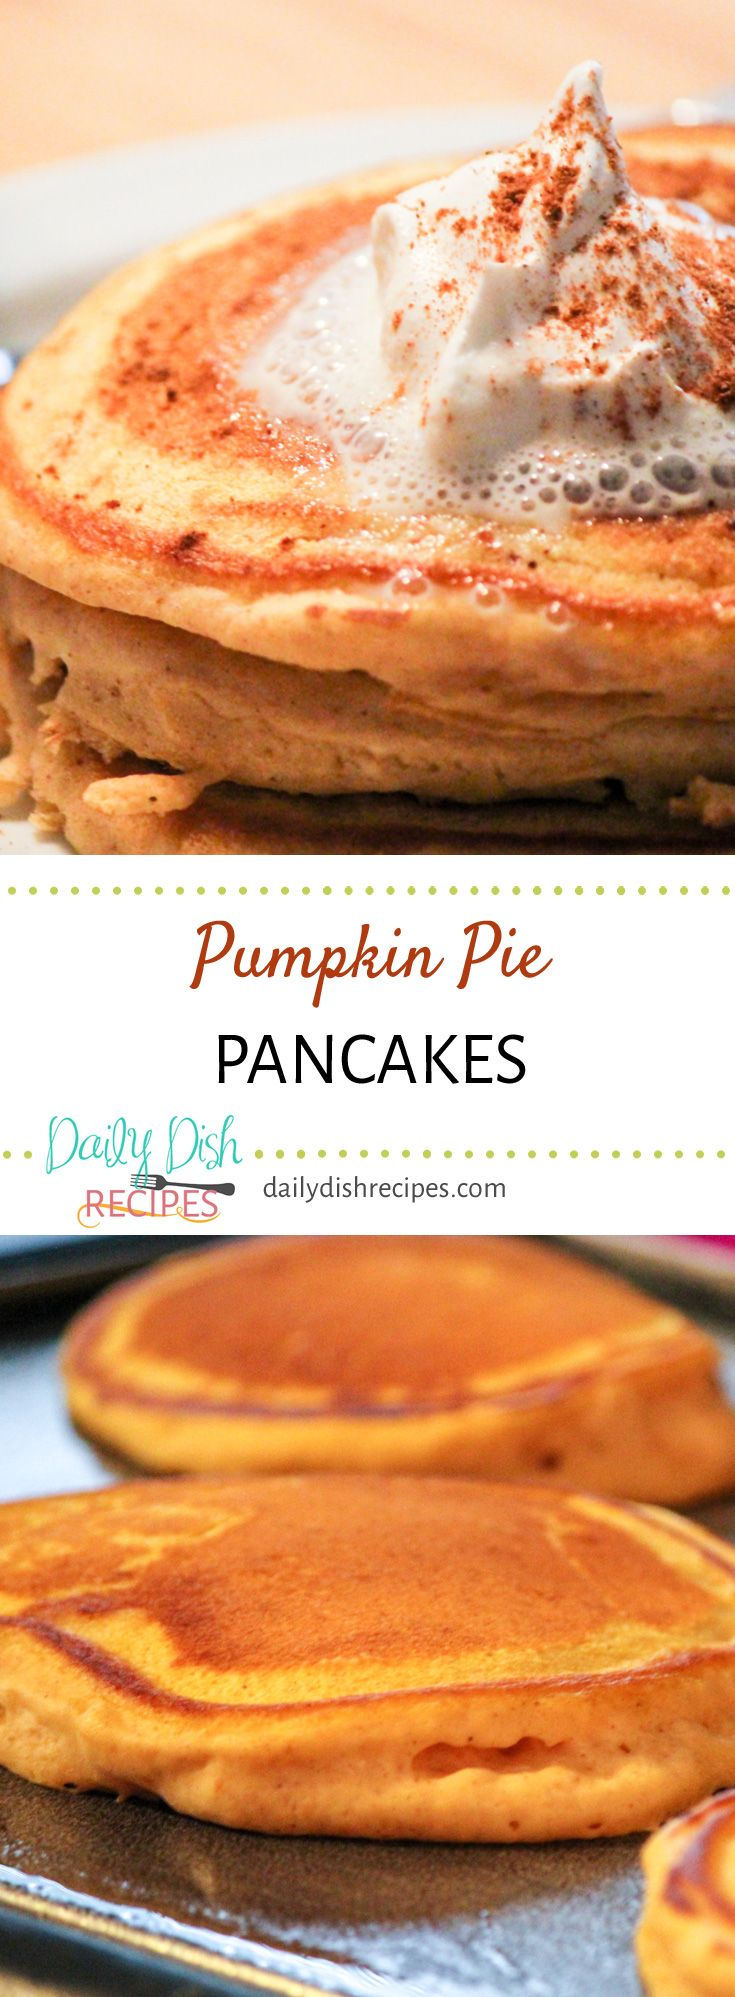 "Pumpkin Pie Pancakes Recipe - We make these delicious ""Taste of Fall"" pancakes all year round because they are so perfect, but there is nothing like whipping up a batch on a cold Fall morning. Hearty, delicious and heart warming – spiced to perfection. via @dailydishrecipes"